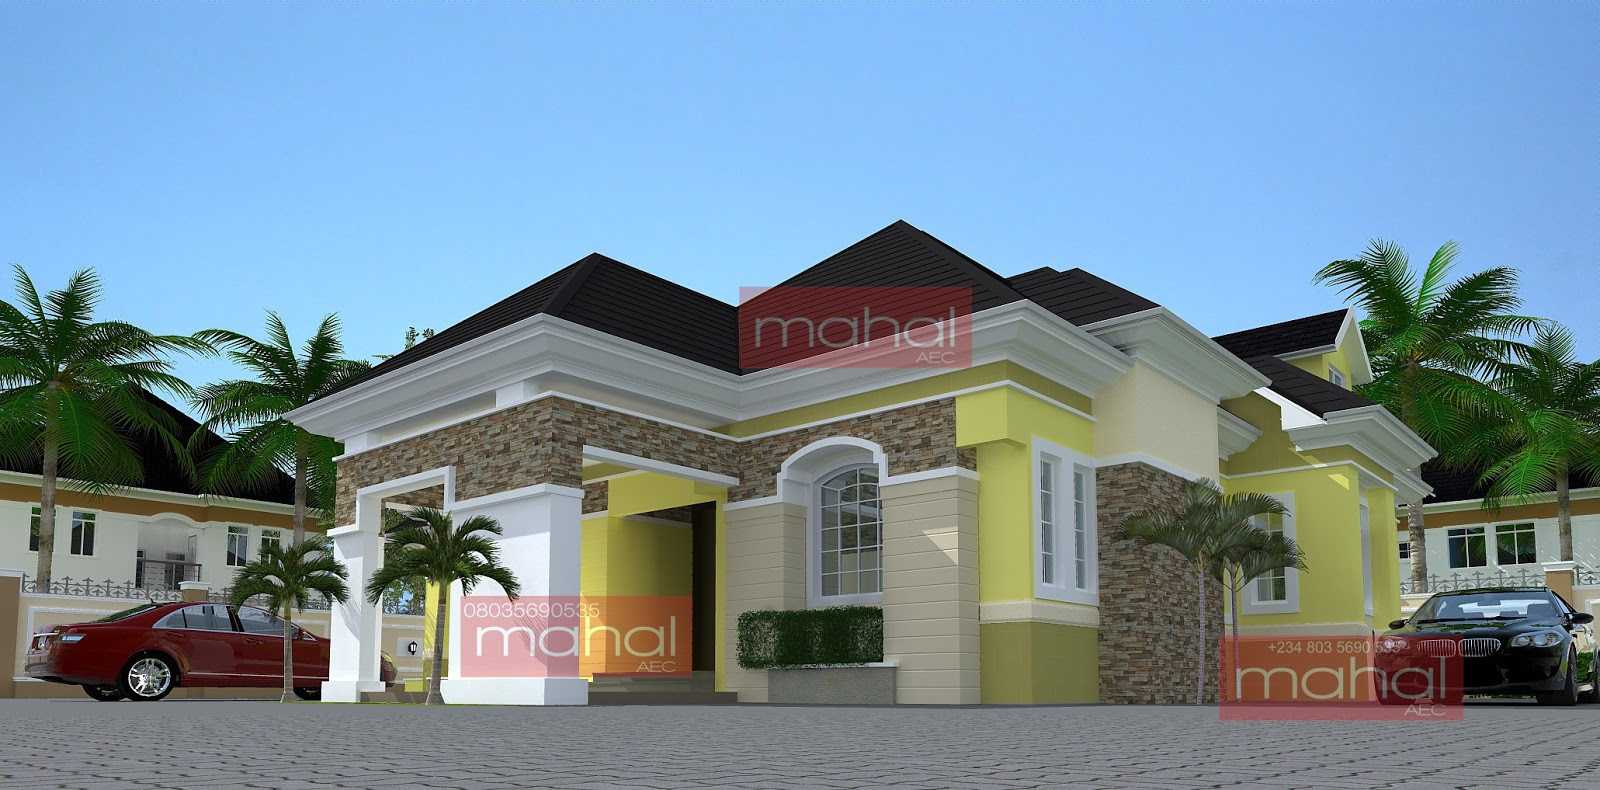 Parapet designs on bungalows in nigeria for Modern house designs in nigeria